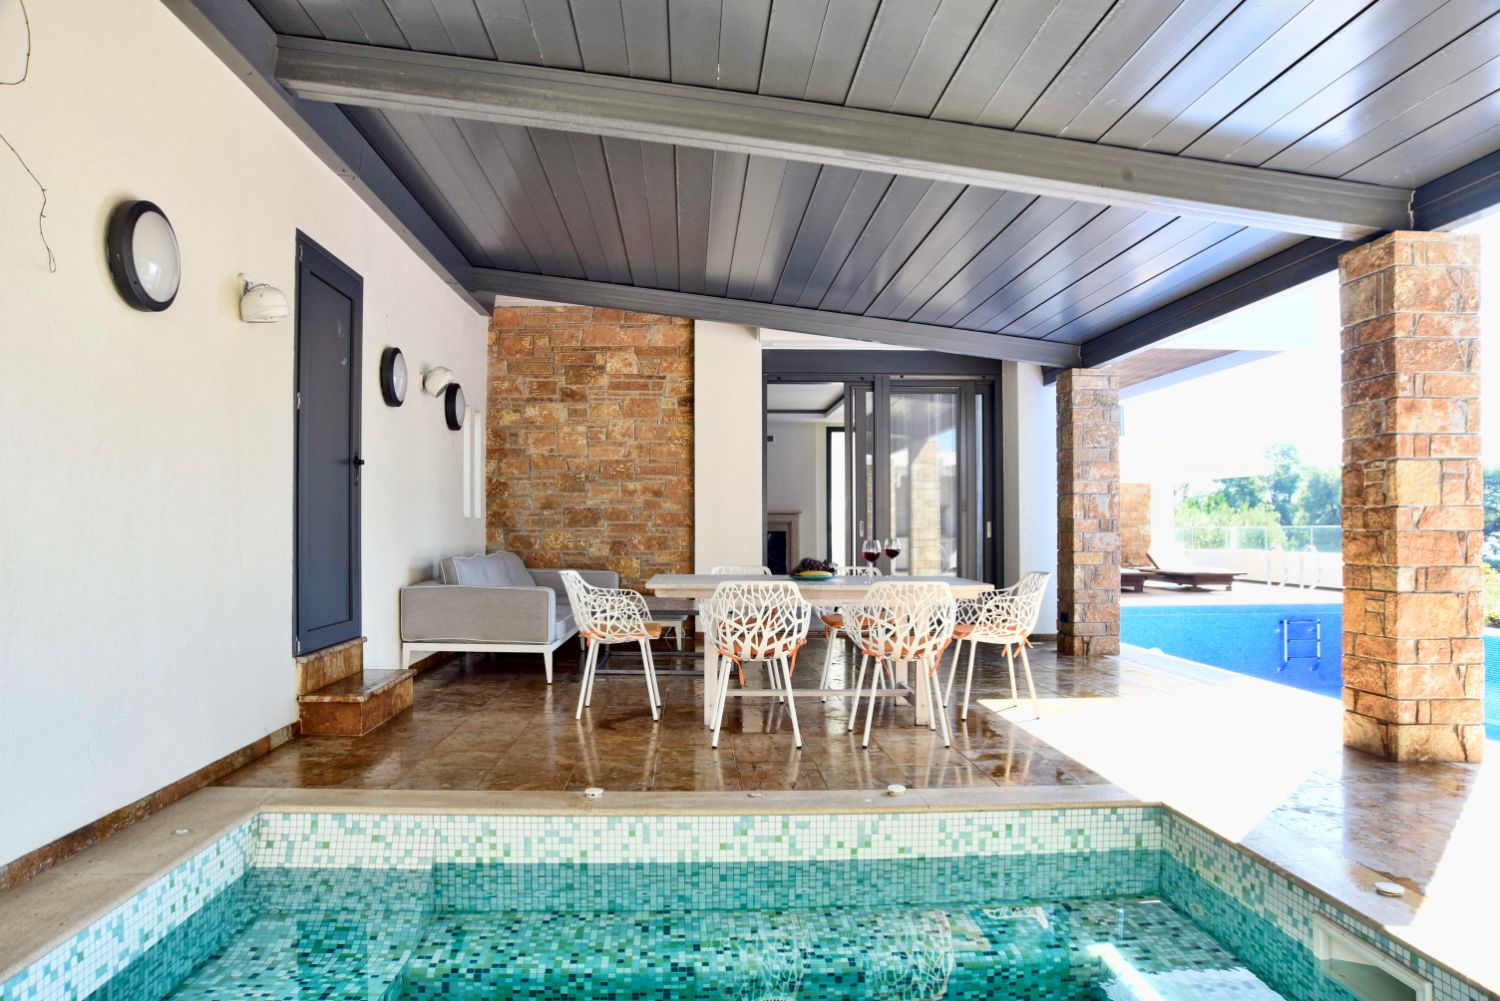 Outside Lounging Areas & Jacuzzi